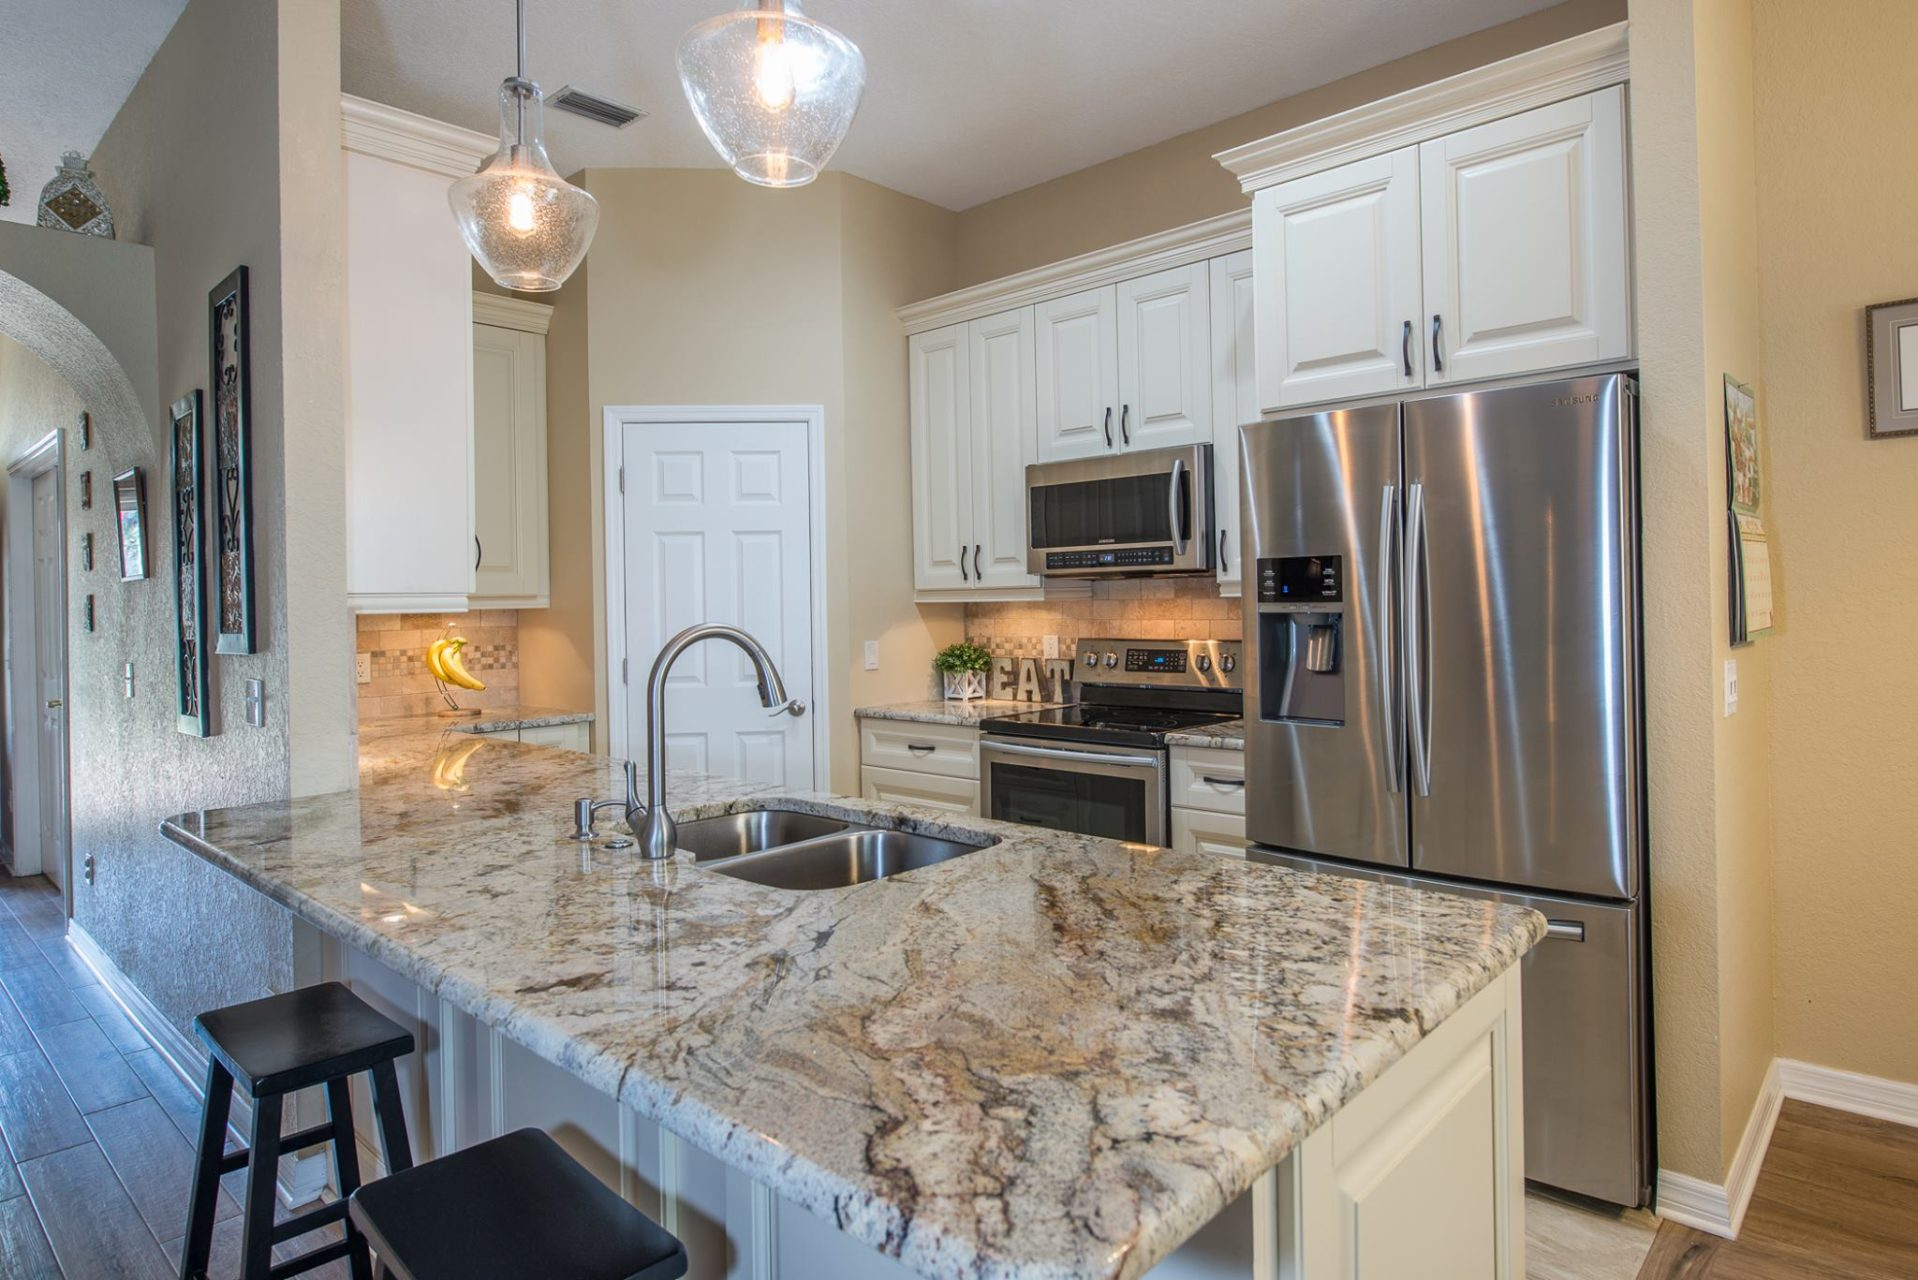 Kitchen Cabinets & More in San Antonio